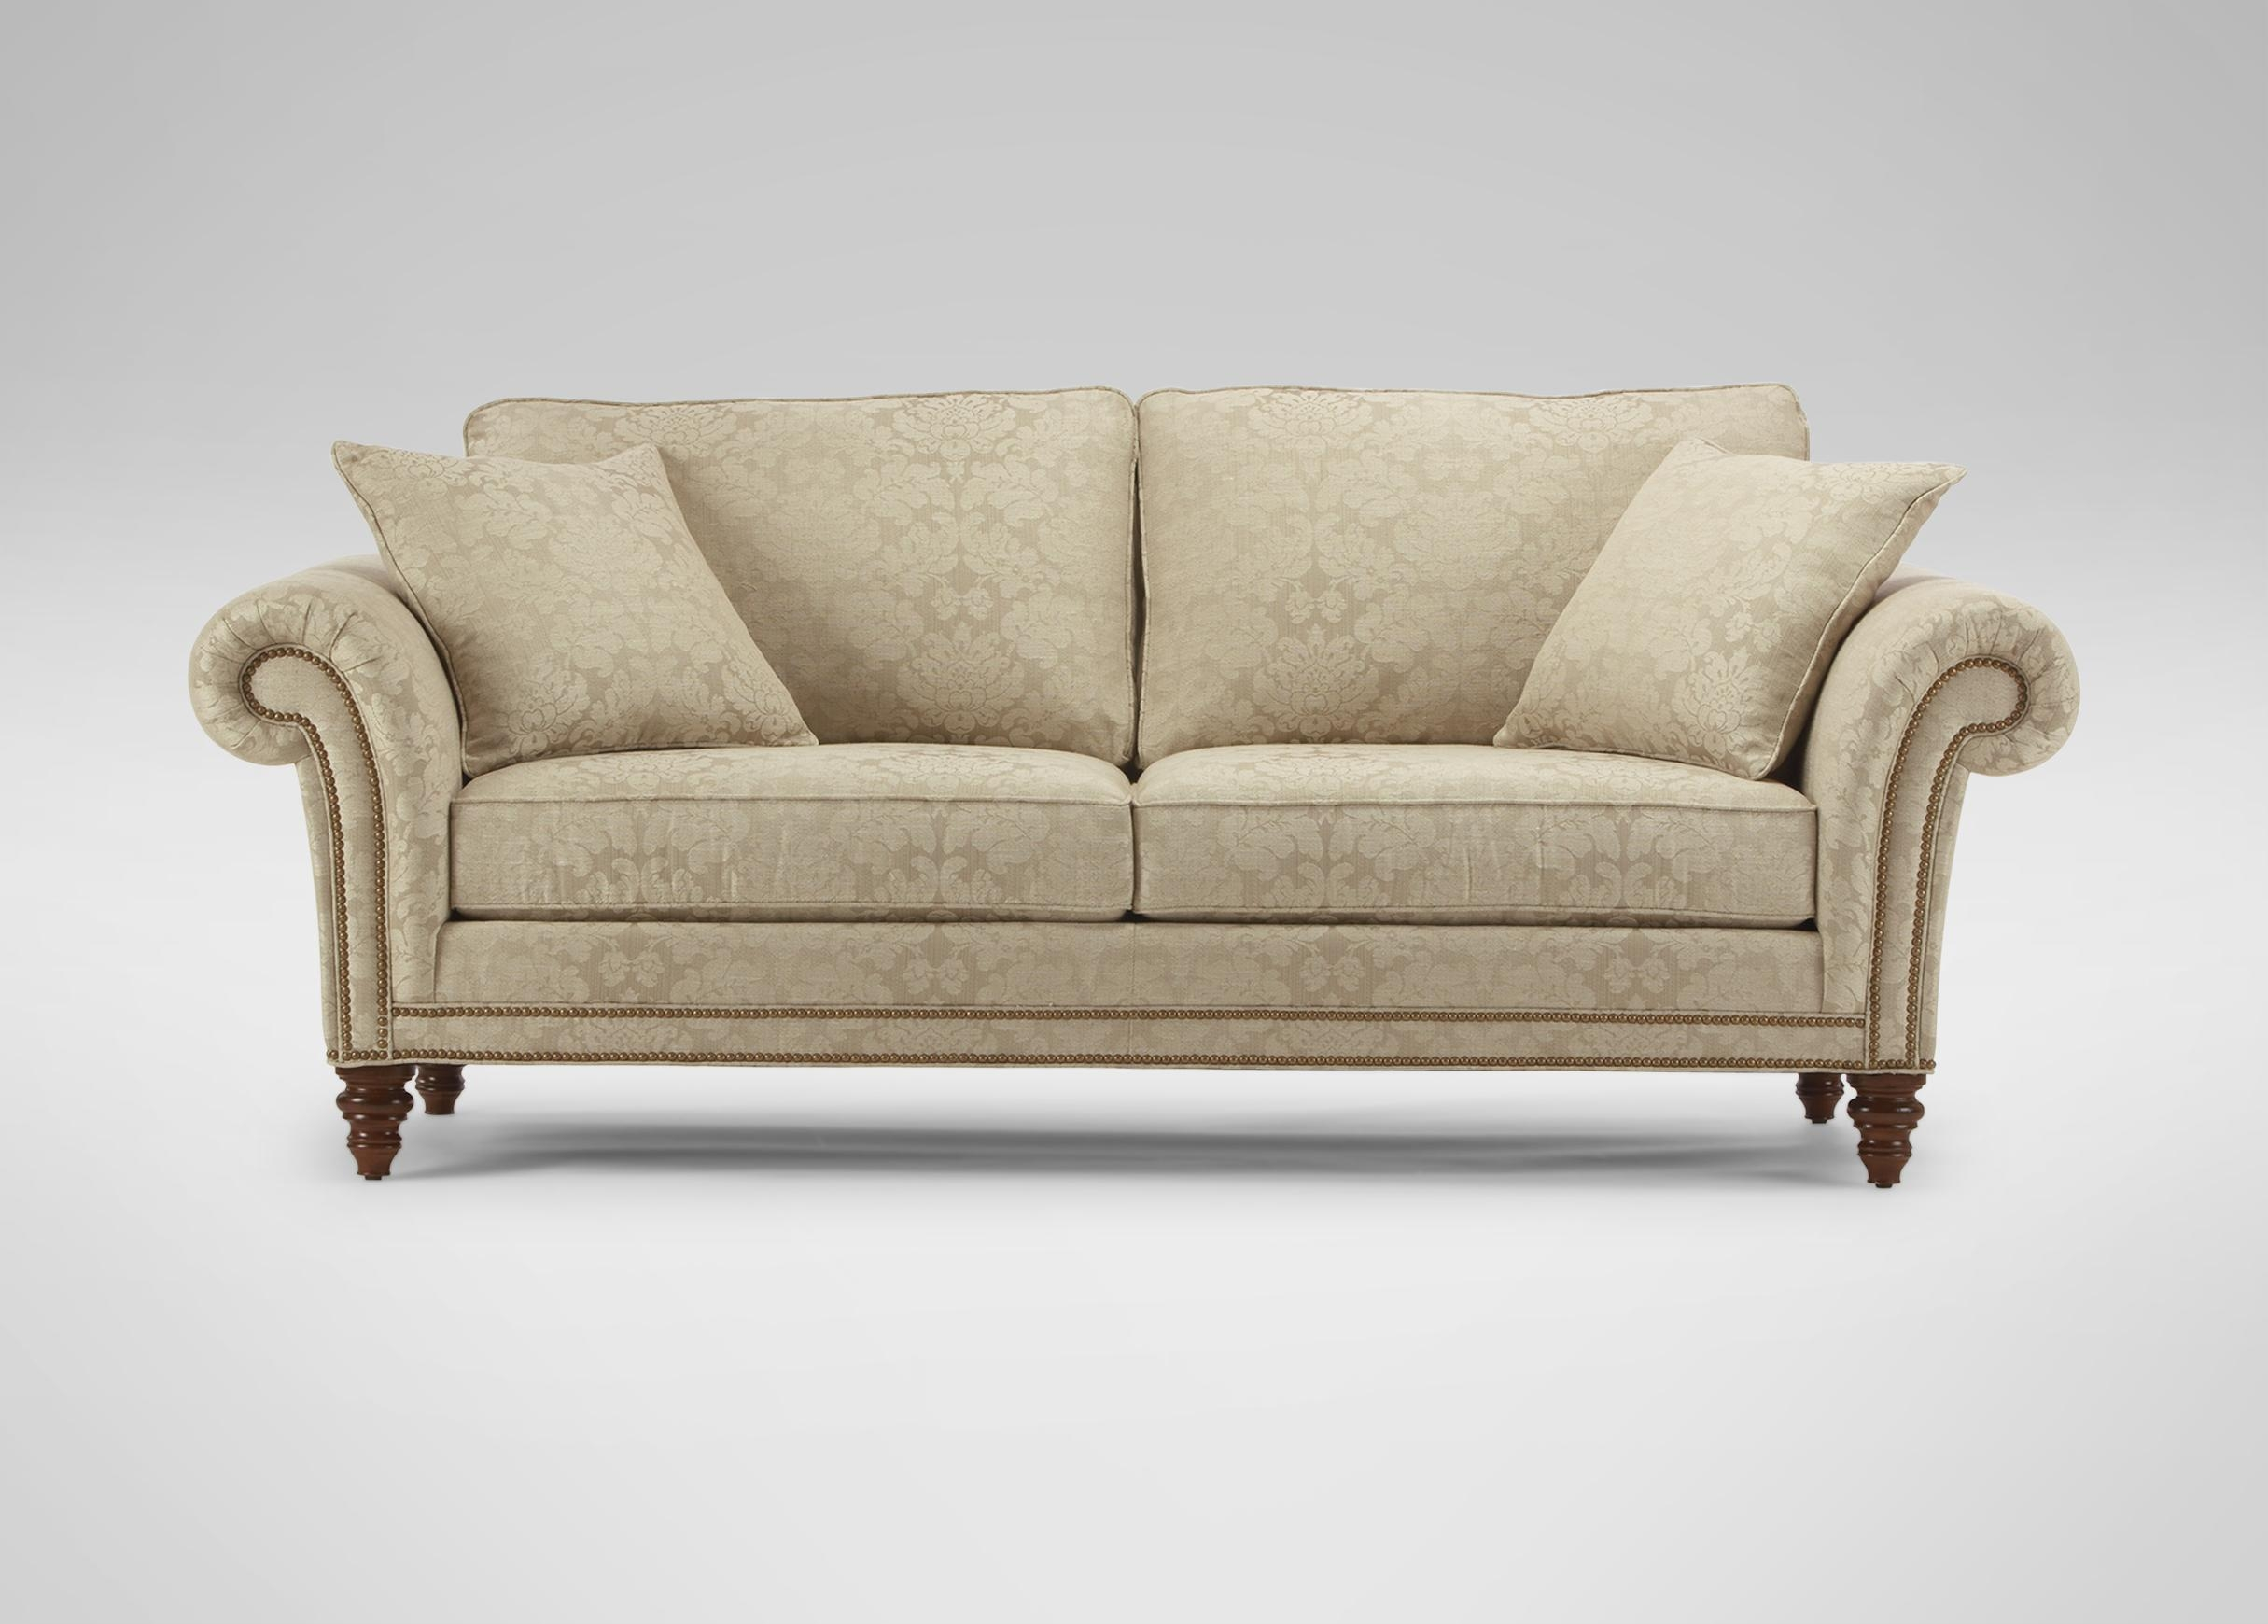 Savoy Sofa | Sofas & Loveseats Pertaining To Savoy Sofas (View 1 of 20)